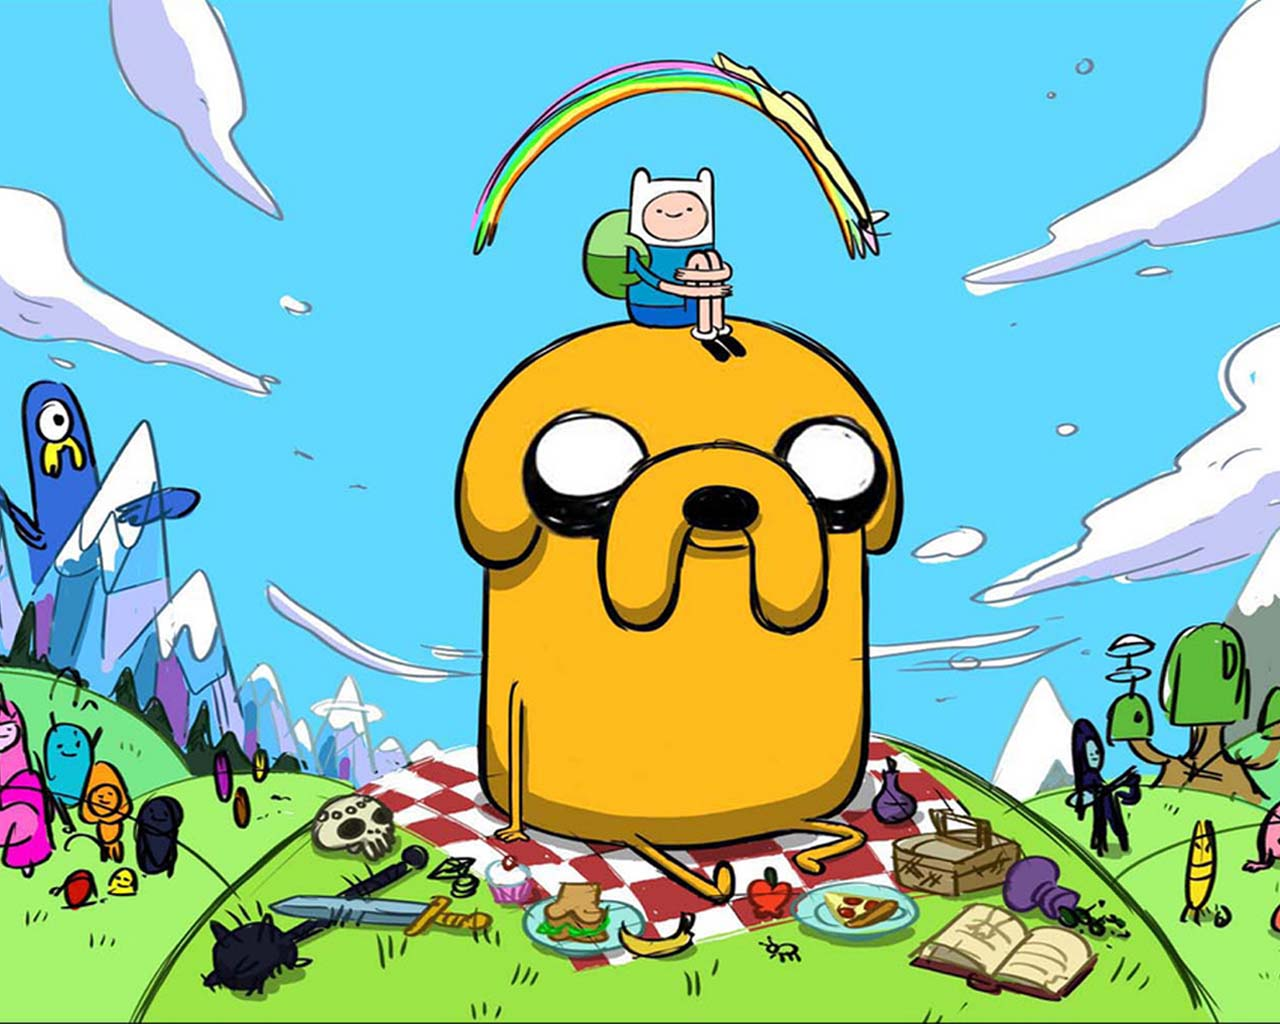 35 images about adventure timee on we heart it see more about 35 images about adventure timee on we heart it see more about adventure time jake and finn altavistaventures Image collections